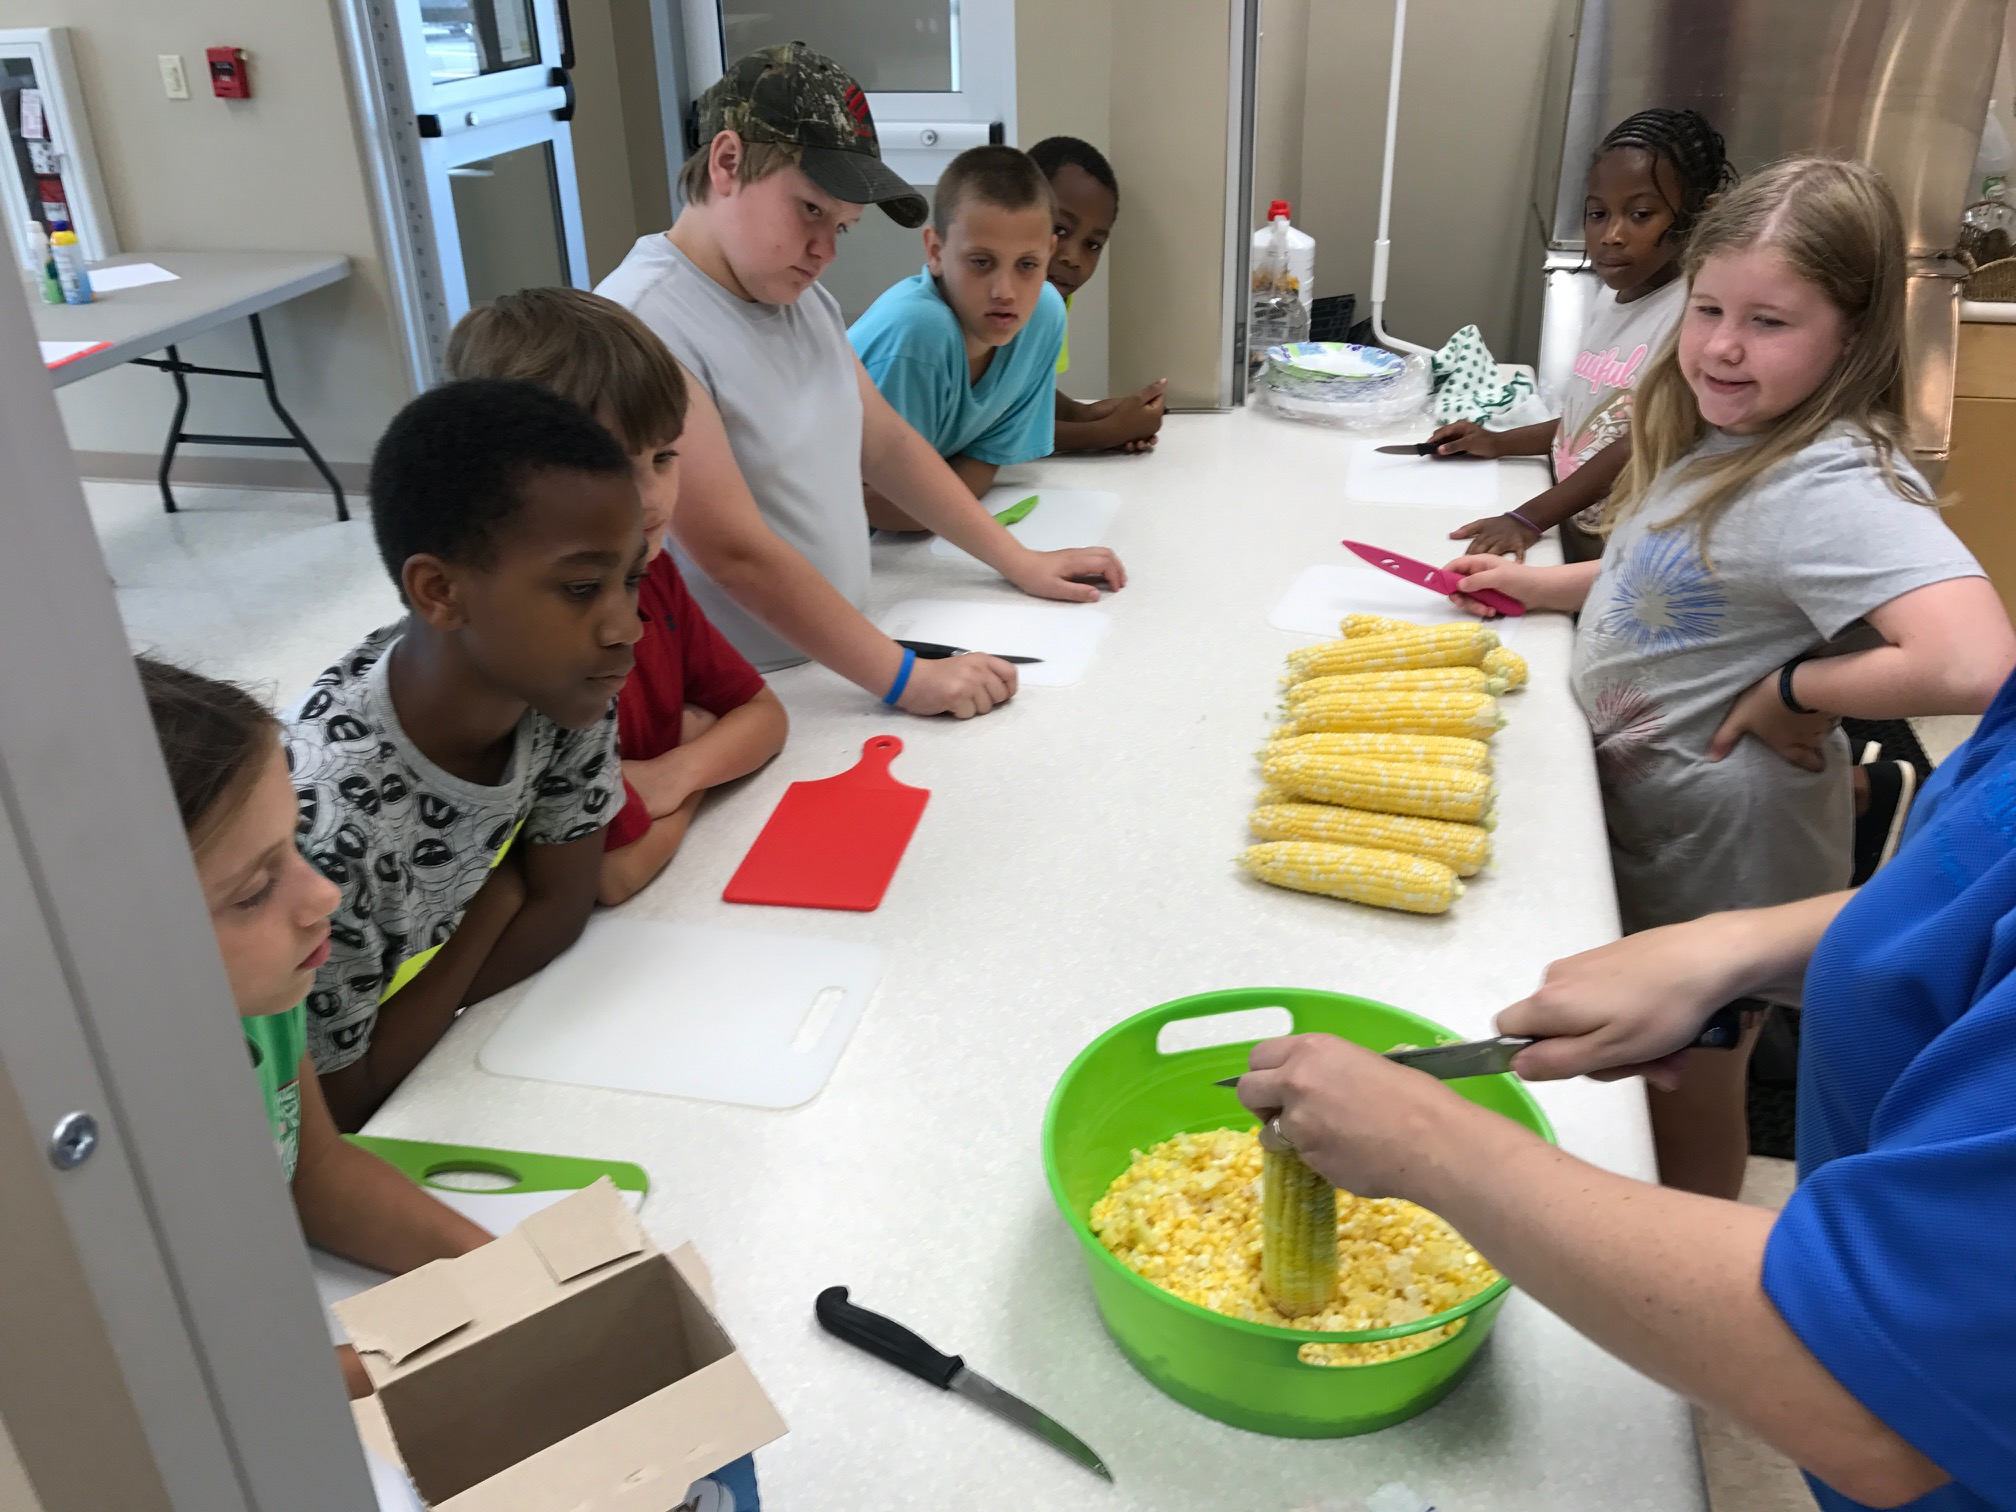 Children watch as an adult cuts corn kernels from the ear.